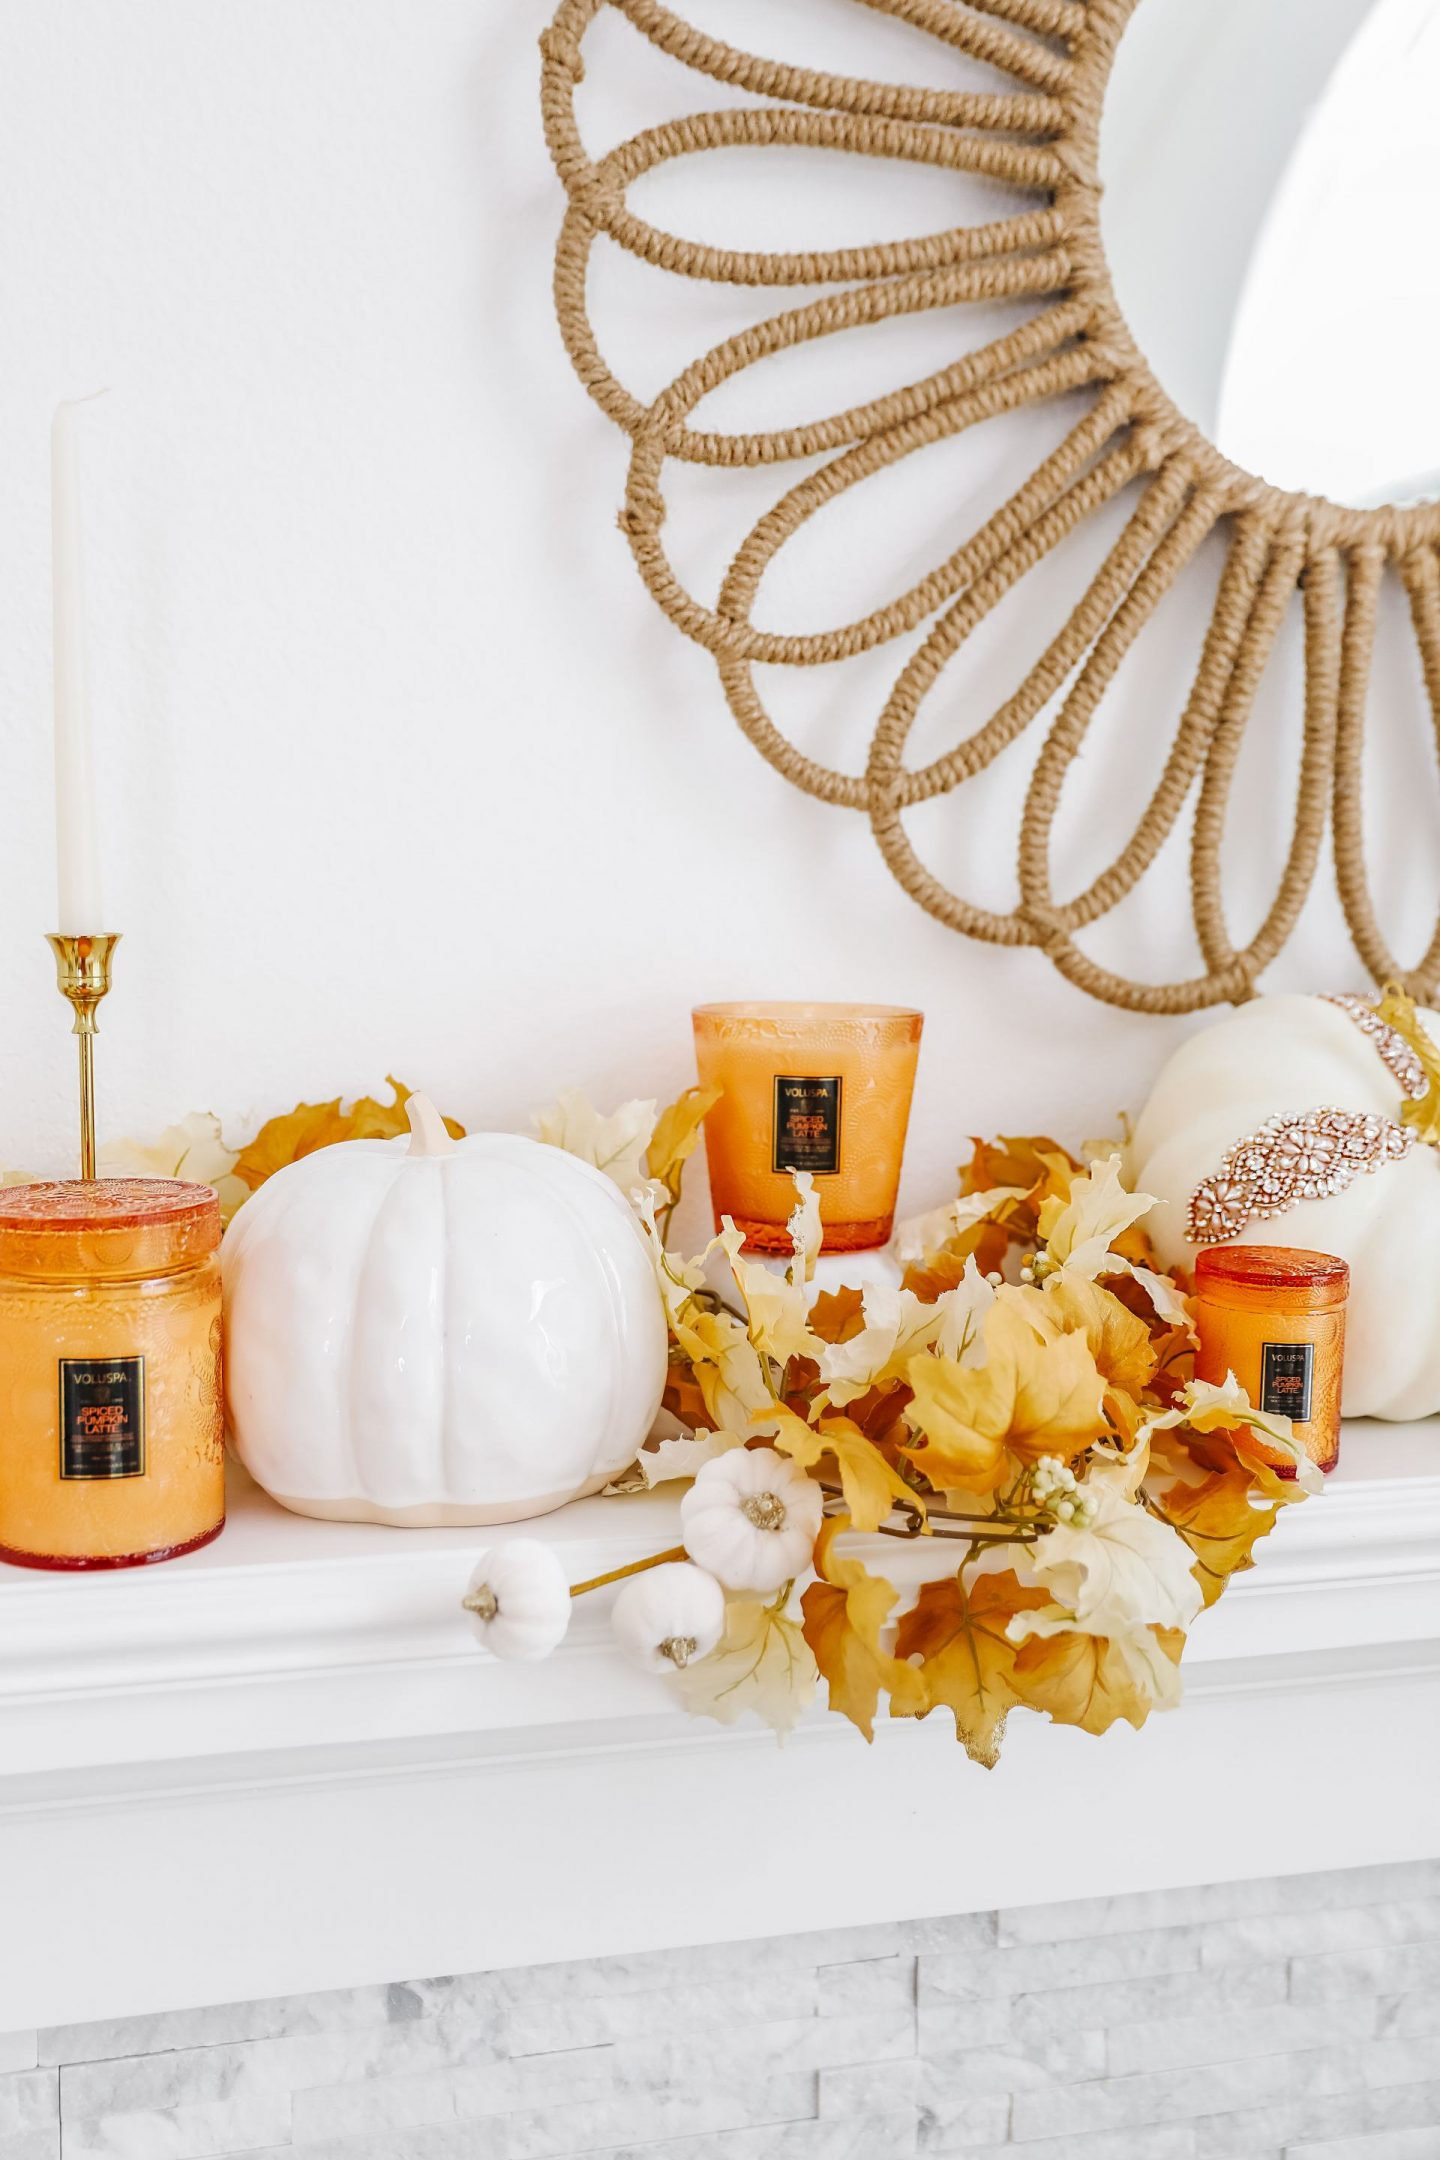 Easy glam neutral fall décor mantle update ideas. Glass pumpkins, voluspa pumpkin spice candles.